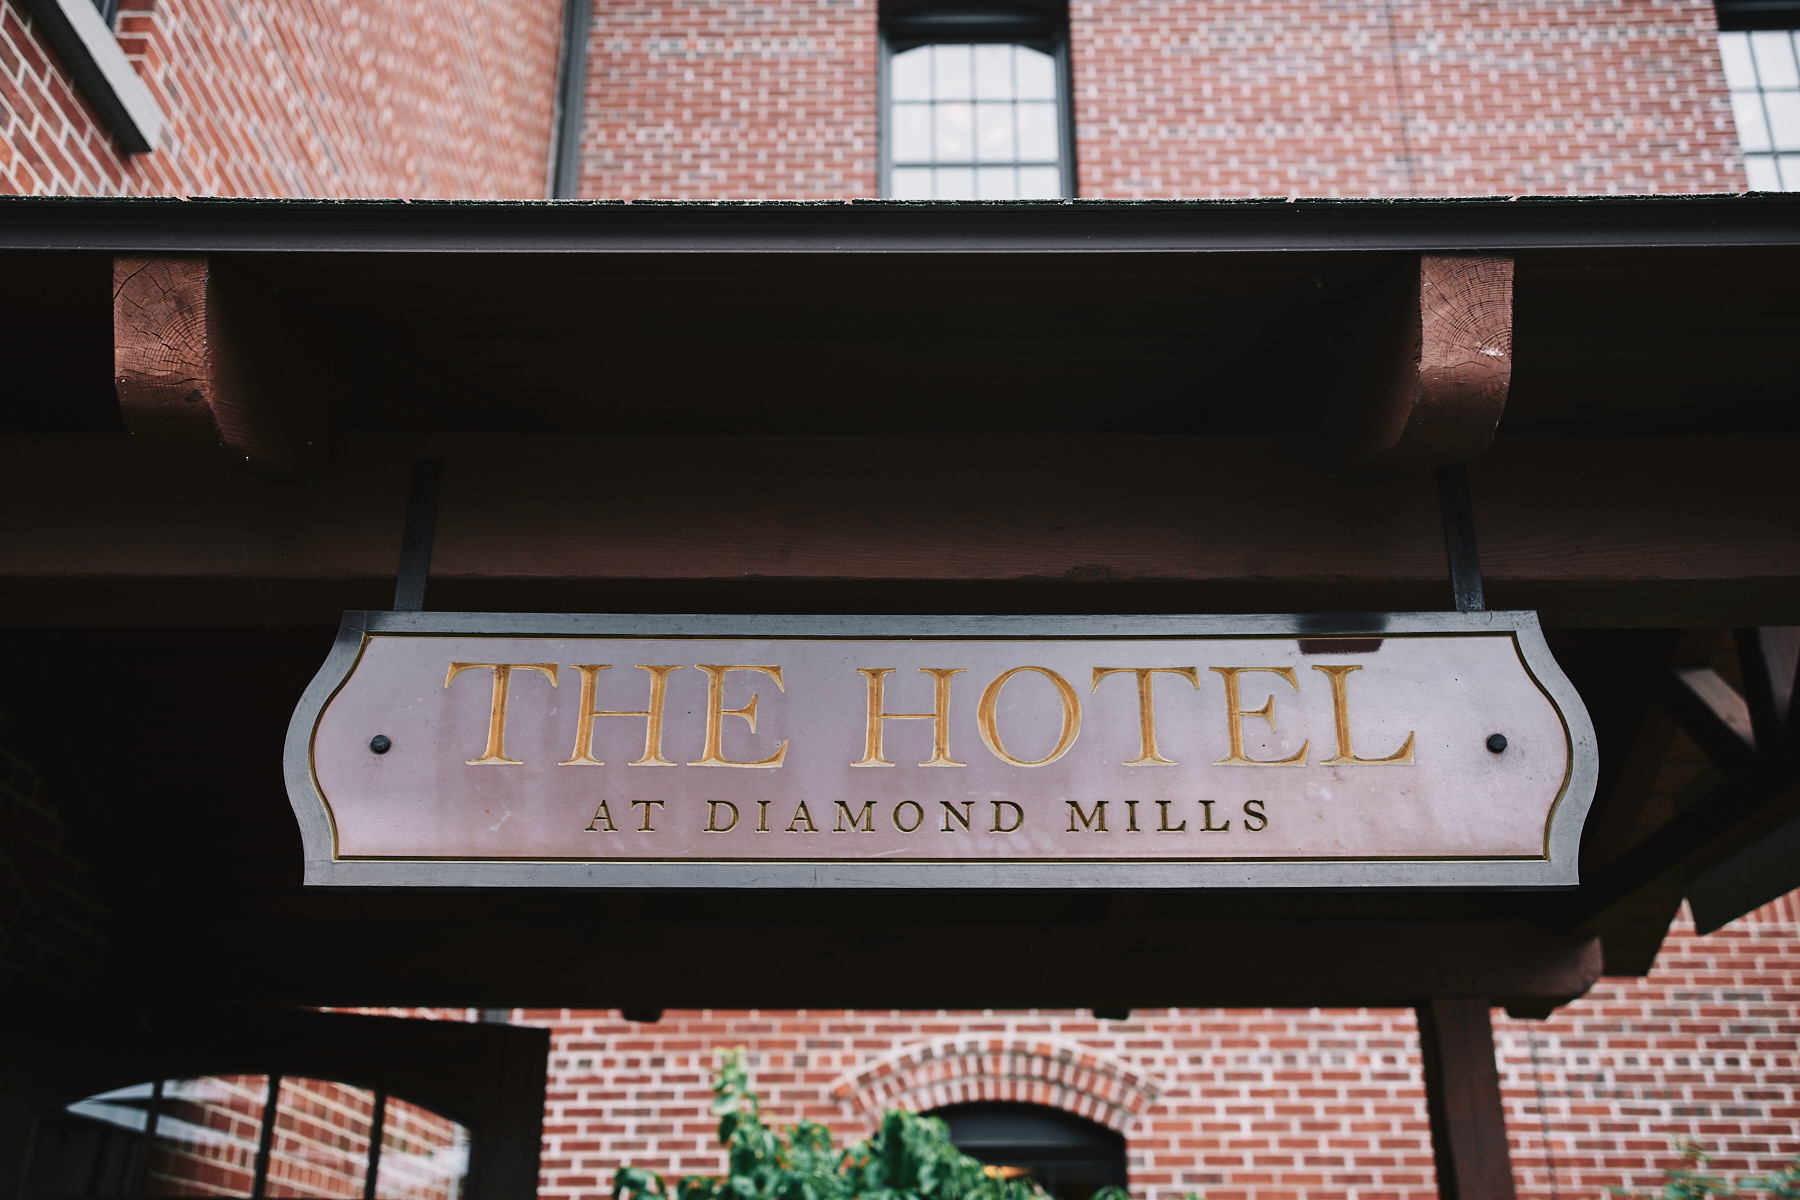 Diamond Mills Hotel sign